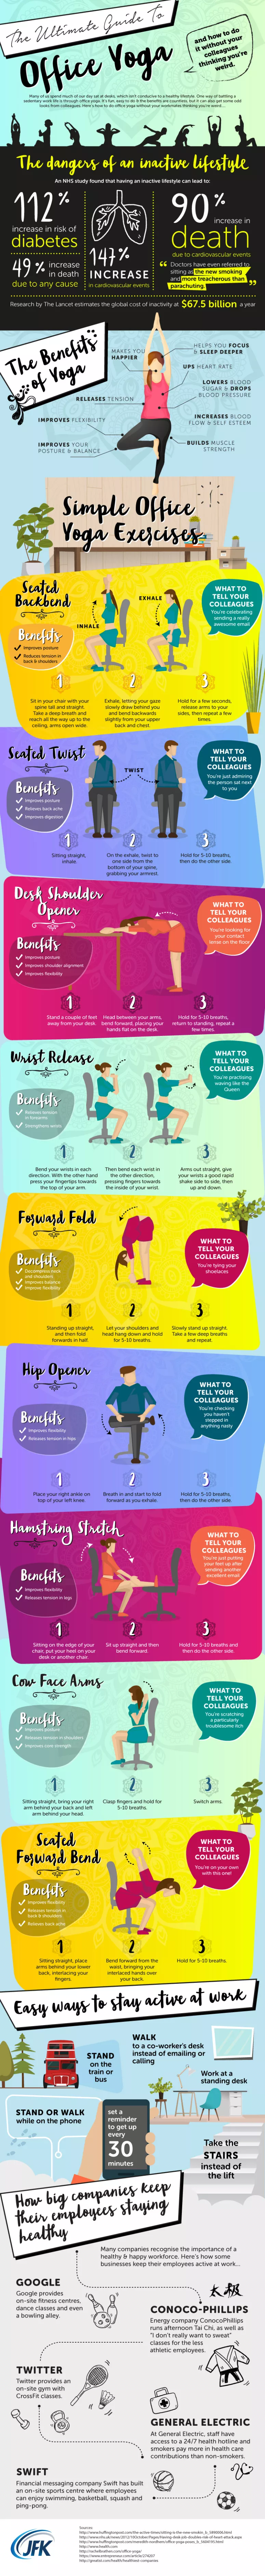 Practice Yoga in Office - the Fun Way! - Infographic